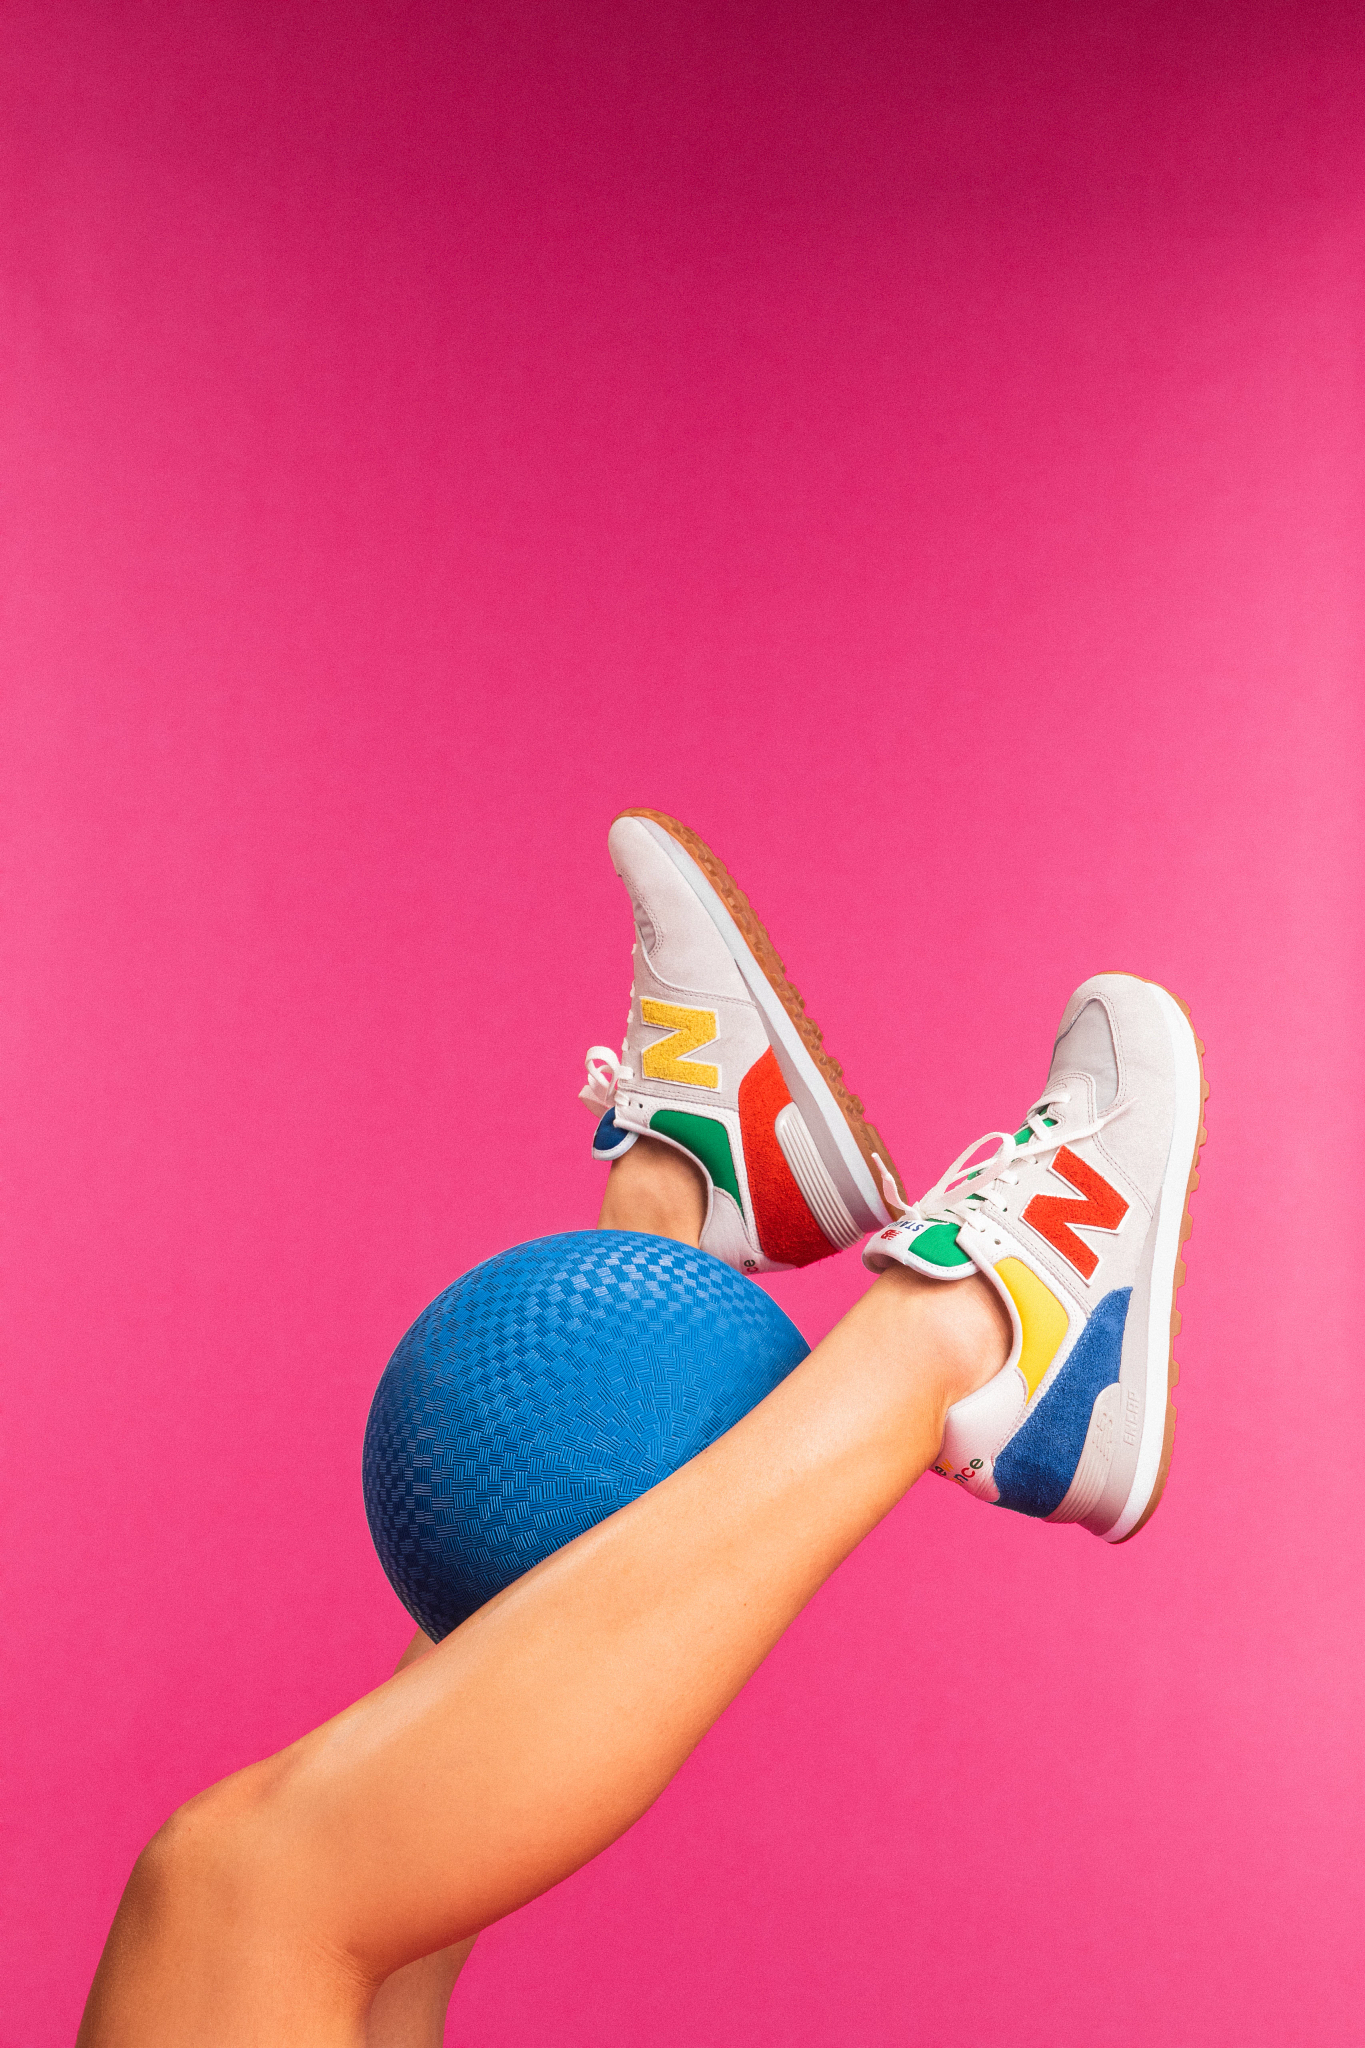 Staud and New Balance Are Back With Another Joyful Collection